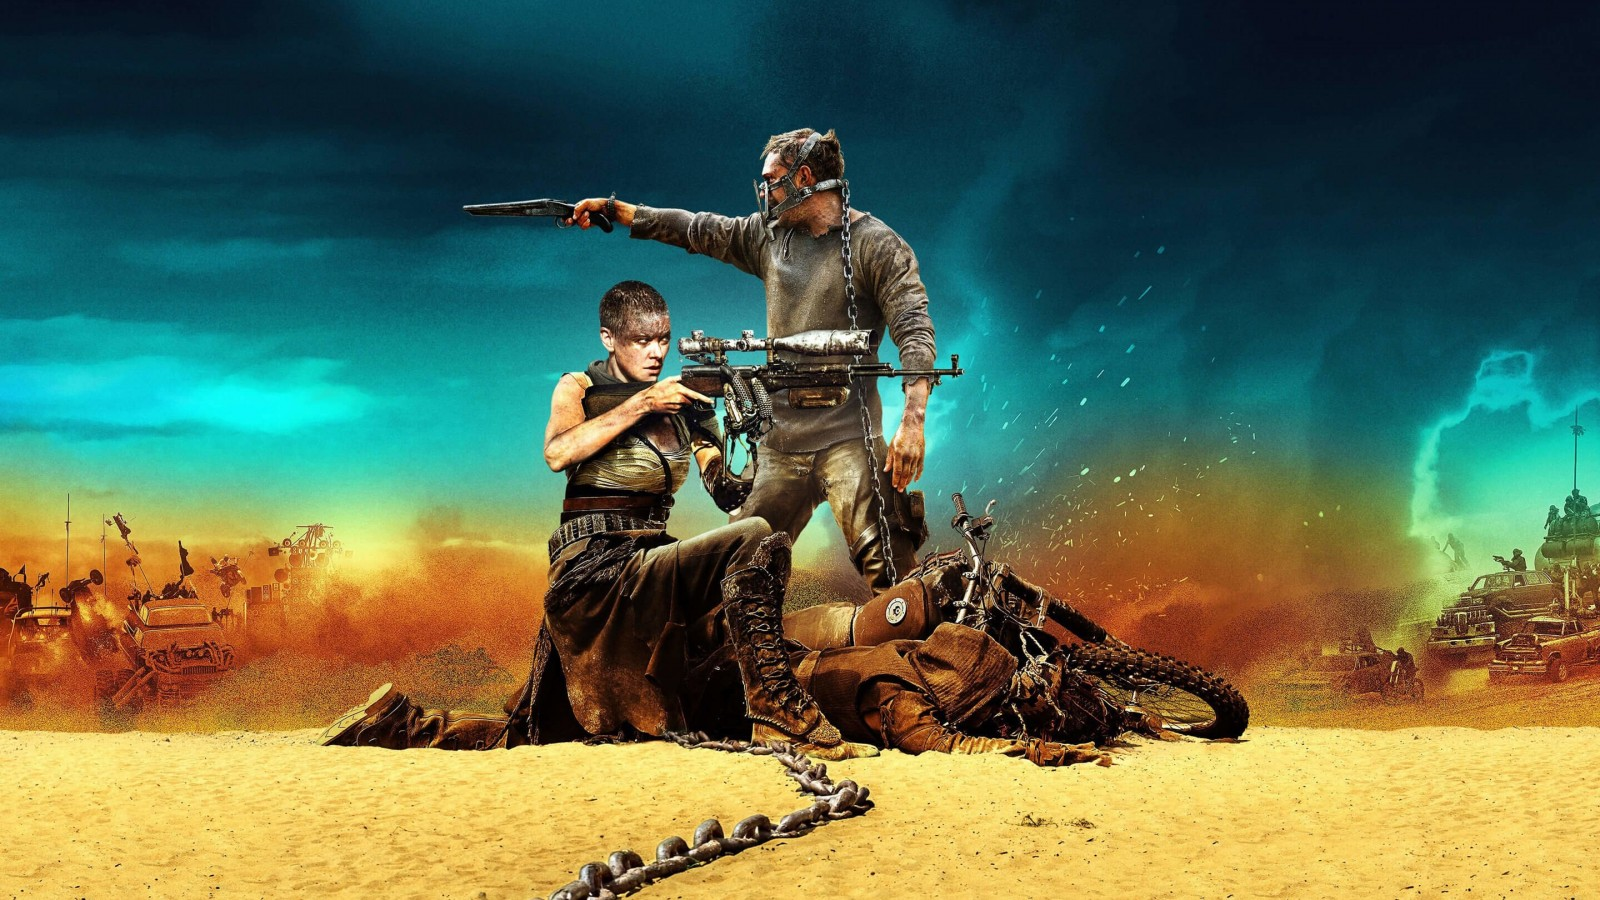 Mad Max: Fury Road Movie (2015) Wallpaper for Desktop 1600x900